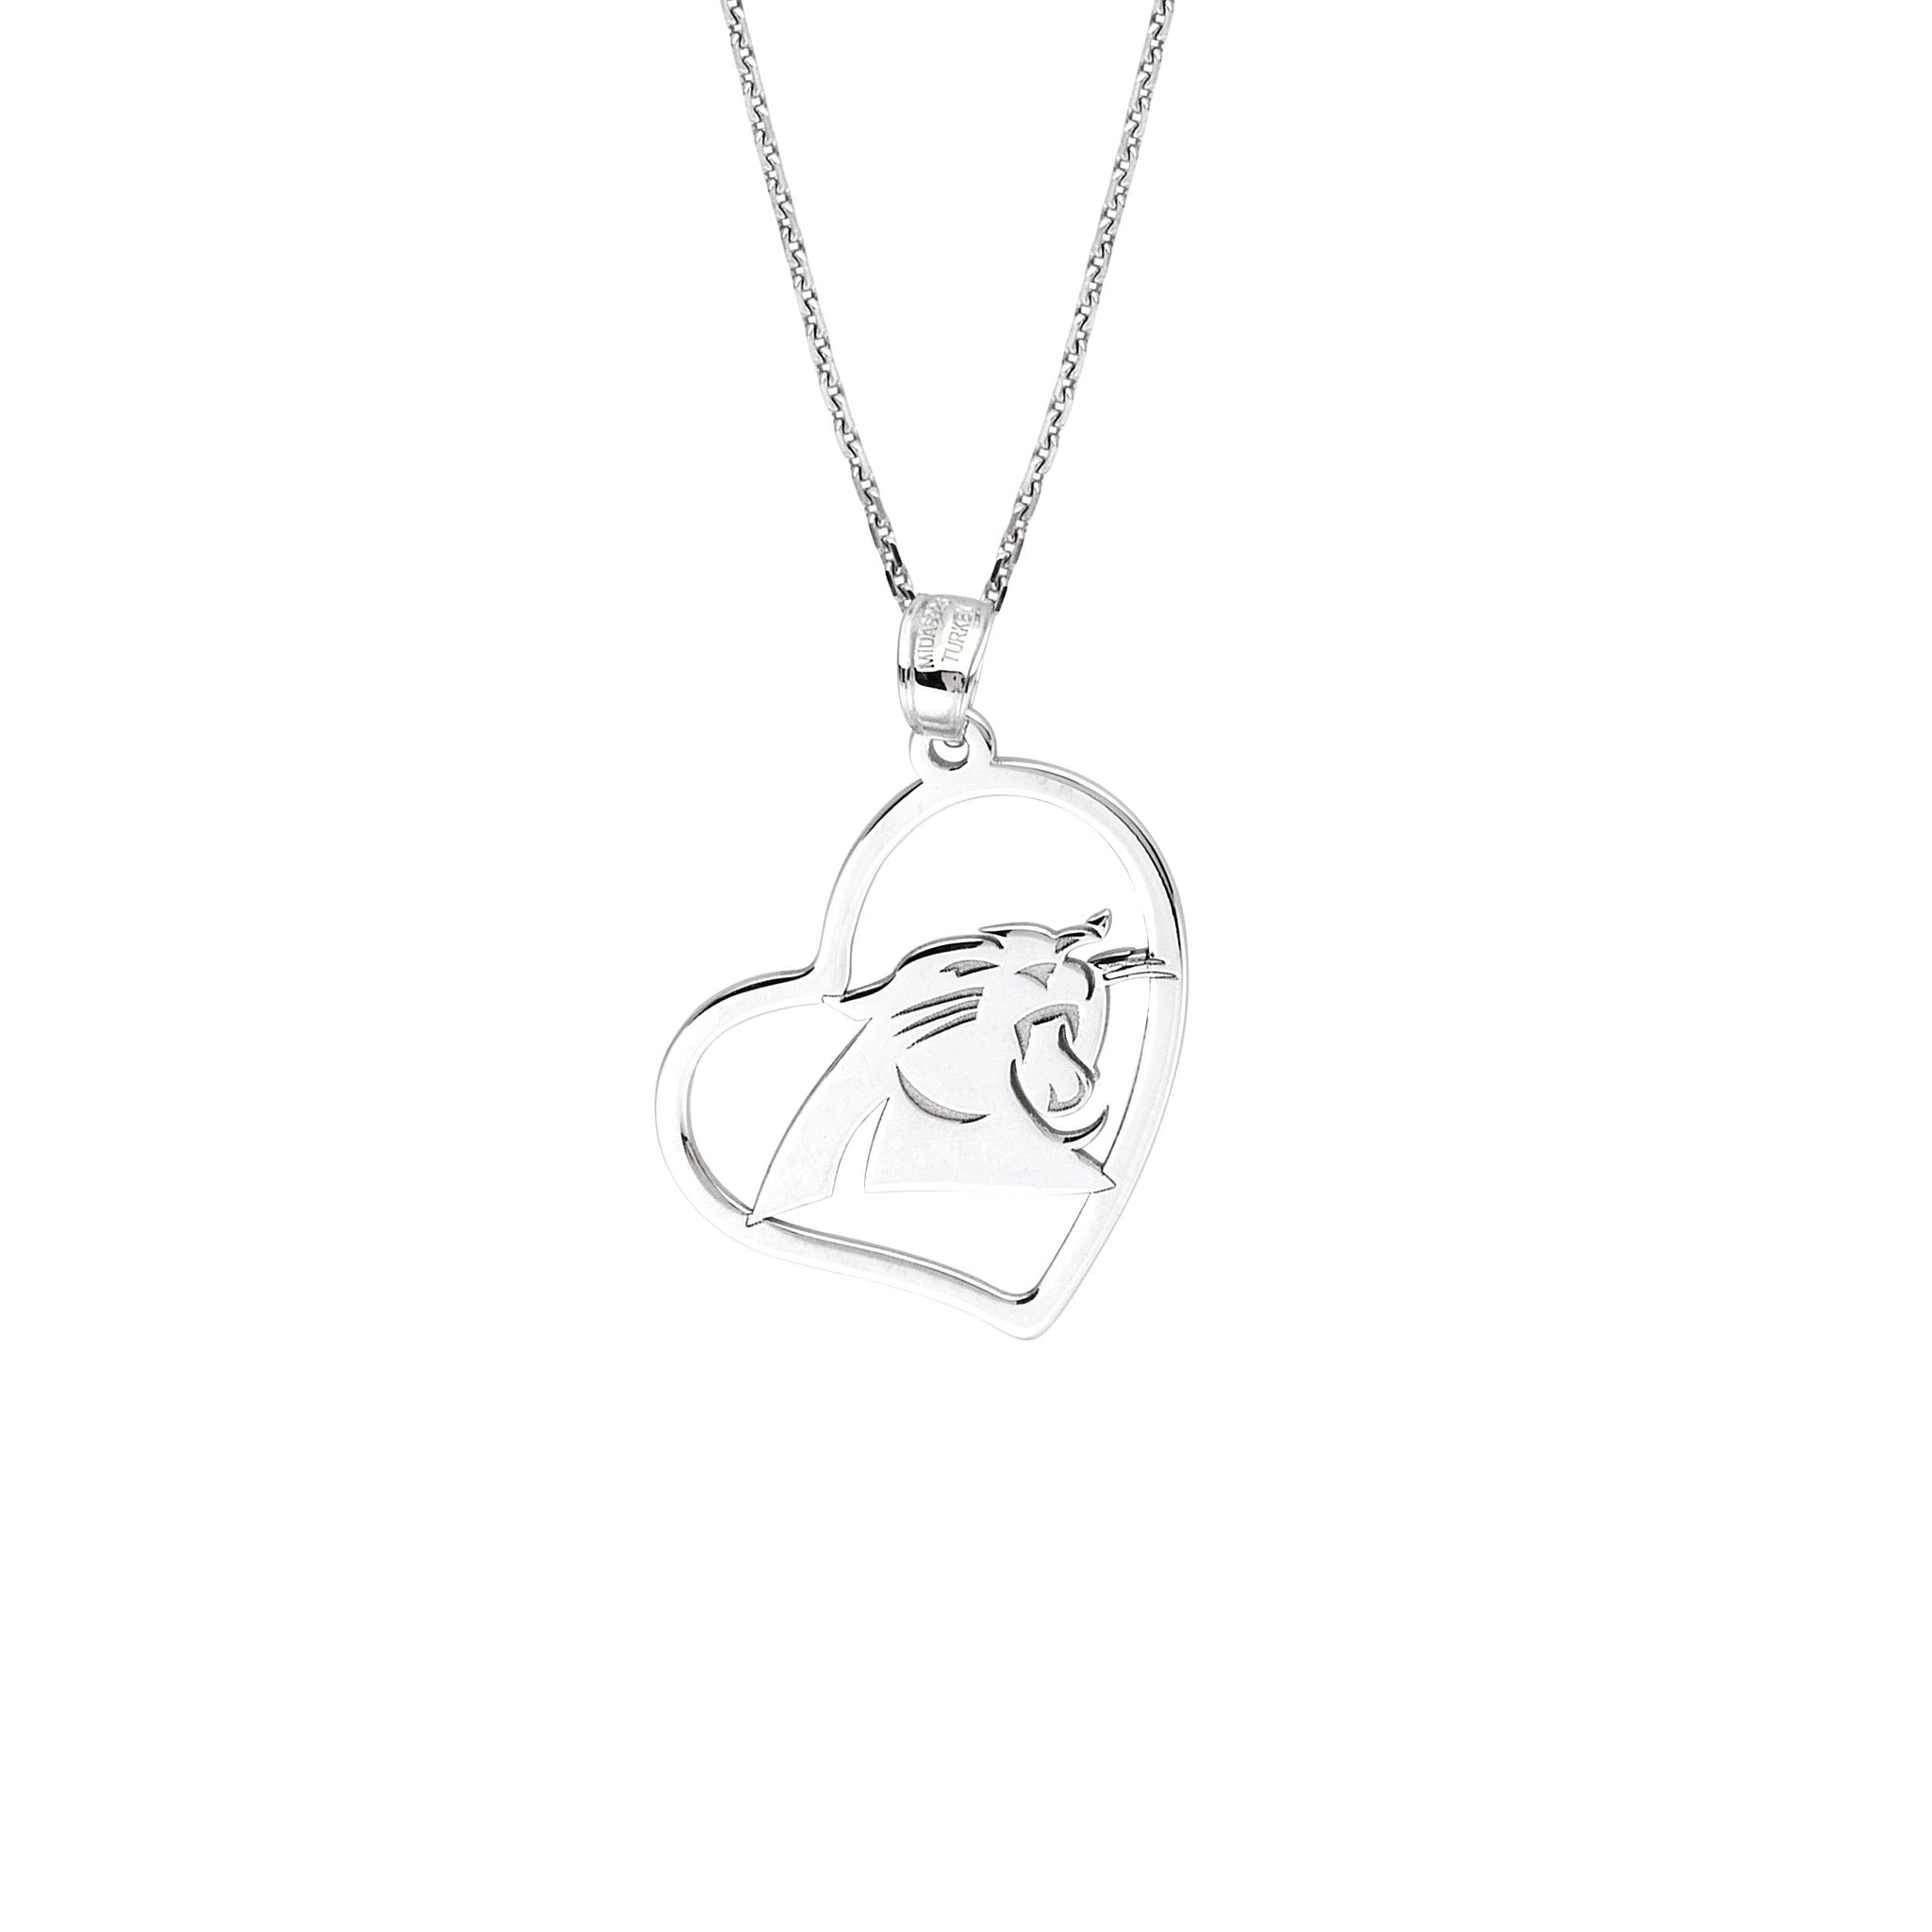 NFL Team Slanted Heart Necklace - Carolina Panthers